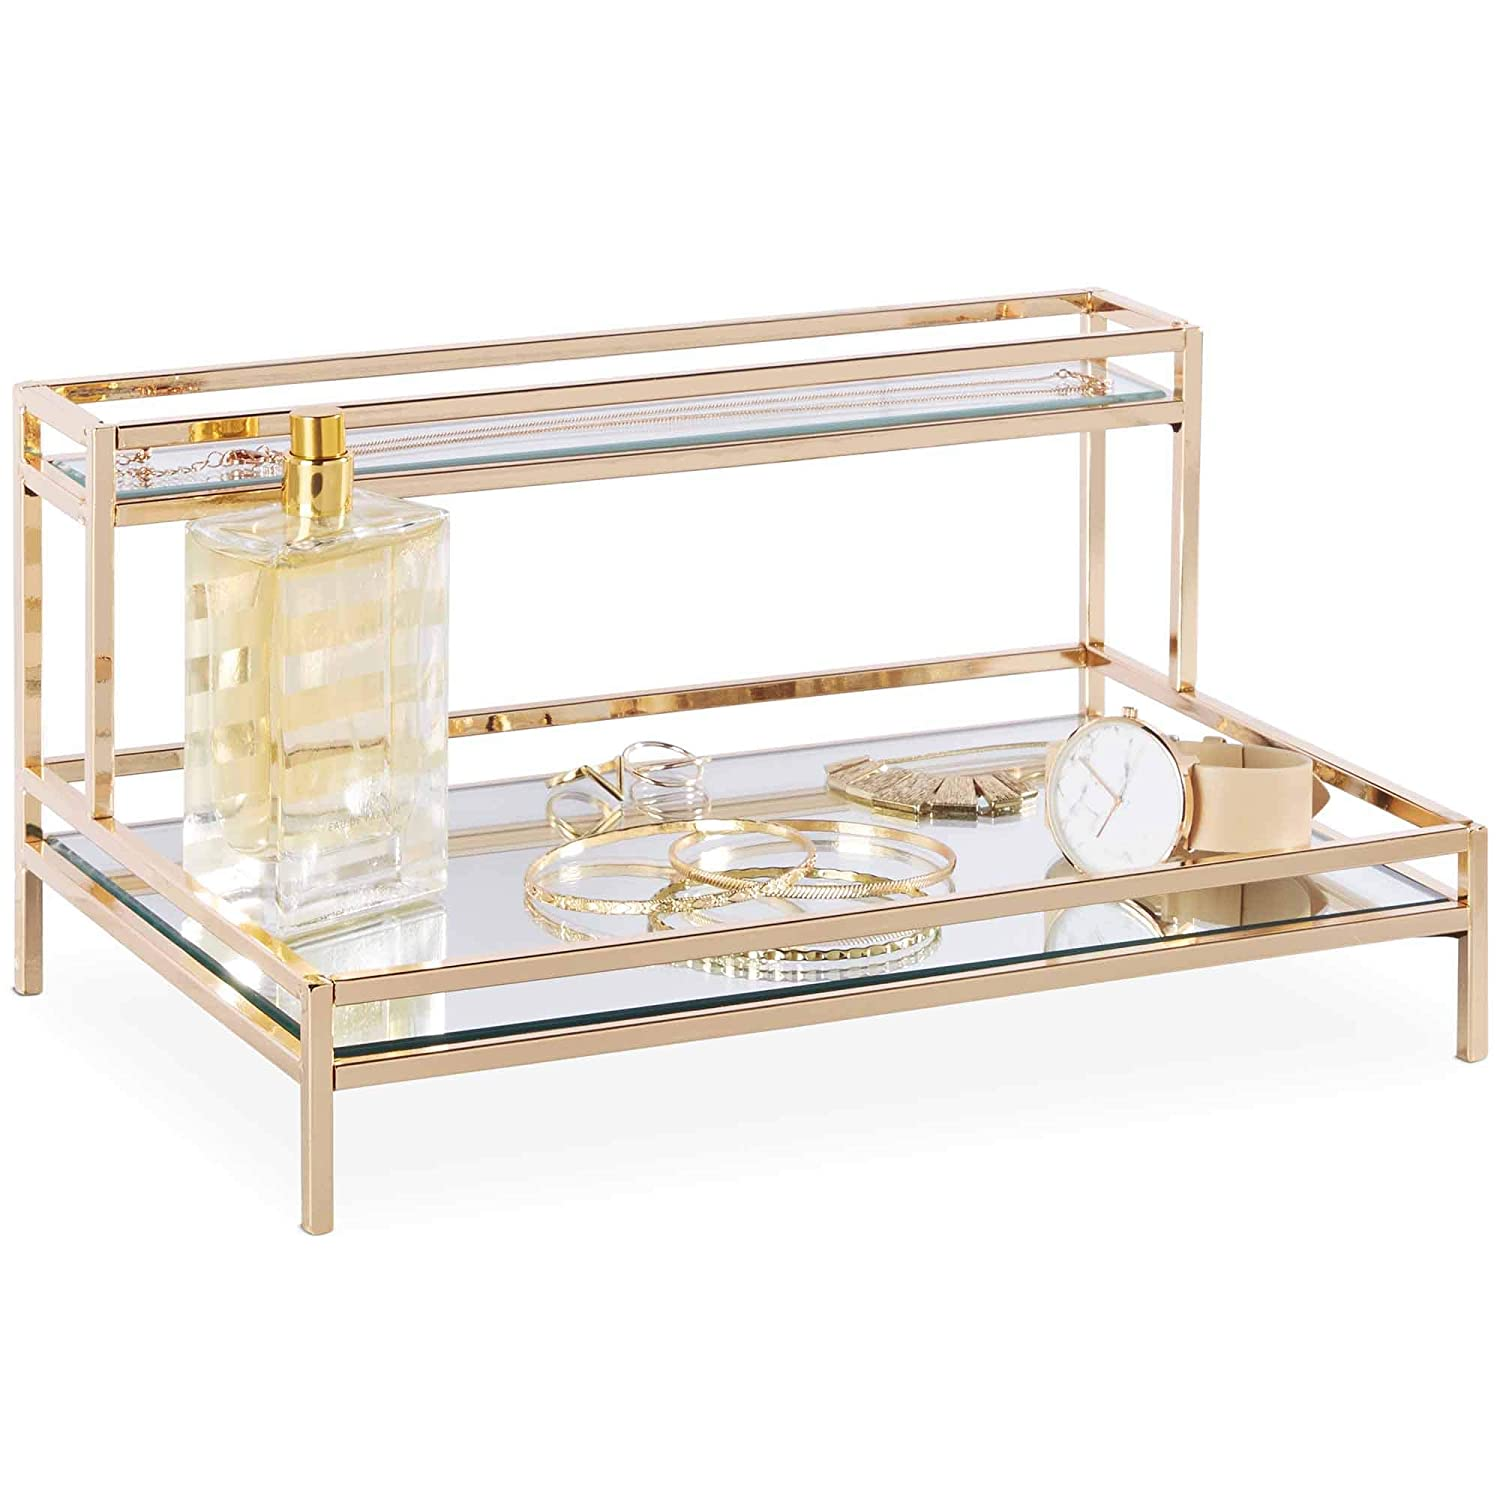 Beautify Mirrored Vanity Tray for Dresser Jewelry and Perfume Tray – Two Tier Trays with Champagne Gold Finish L12 x D7.8 x H5.9 inches